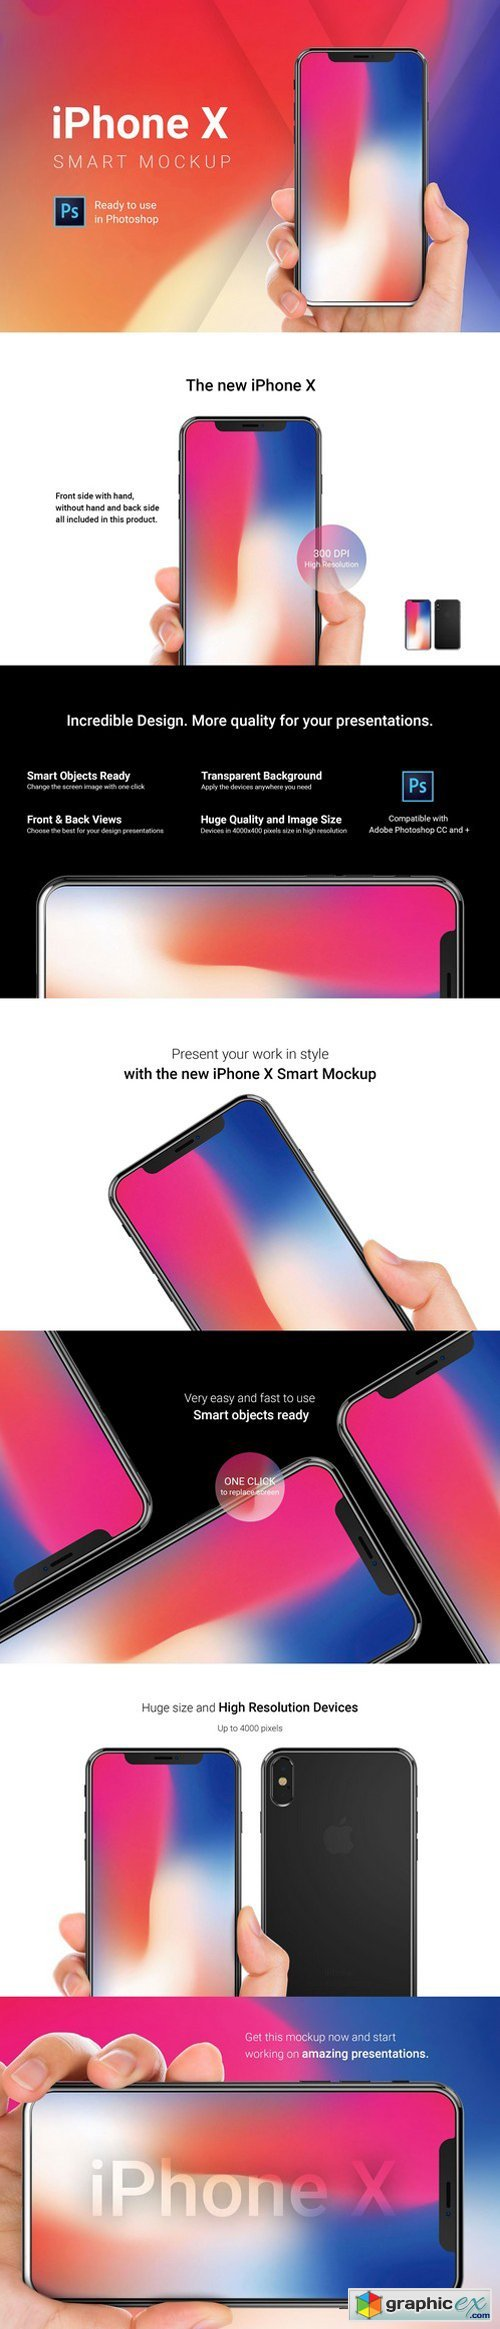 iPhone X Mockup with Hand Straight